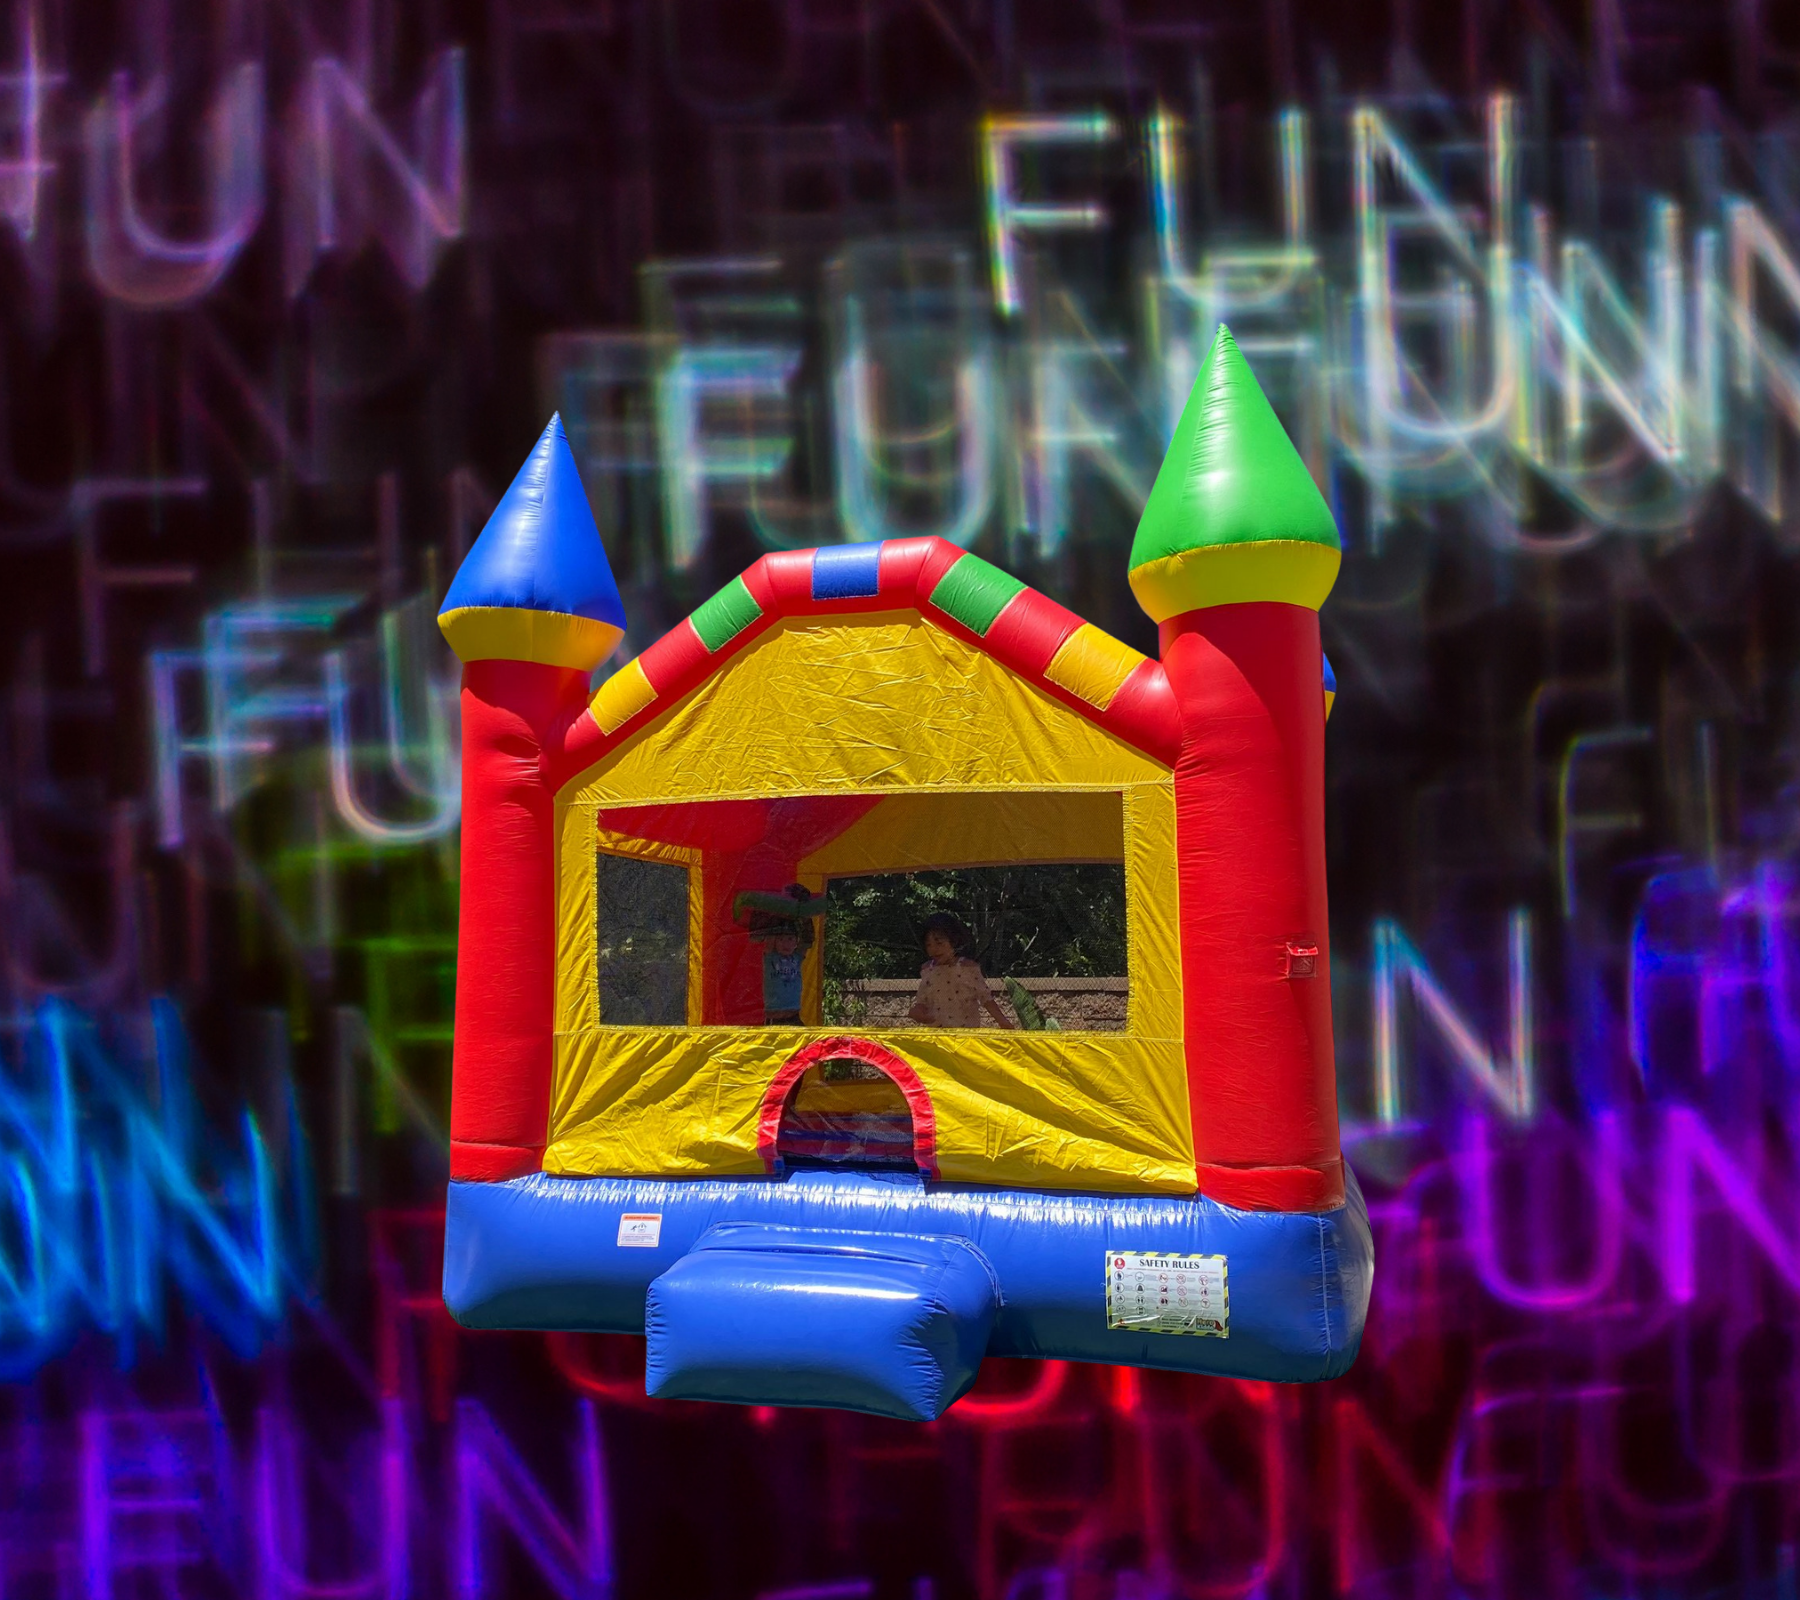 Colorful bounce house no words